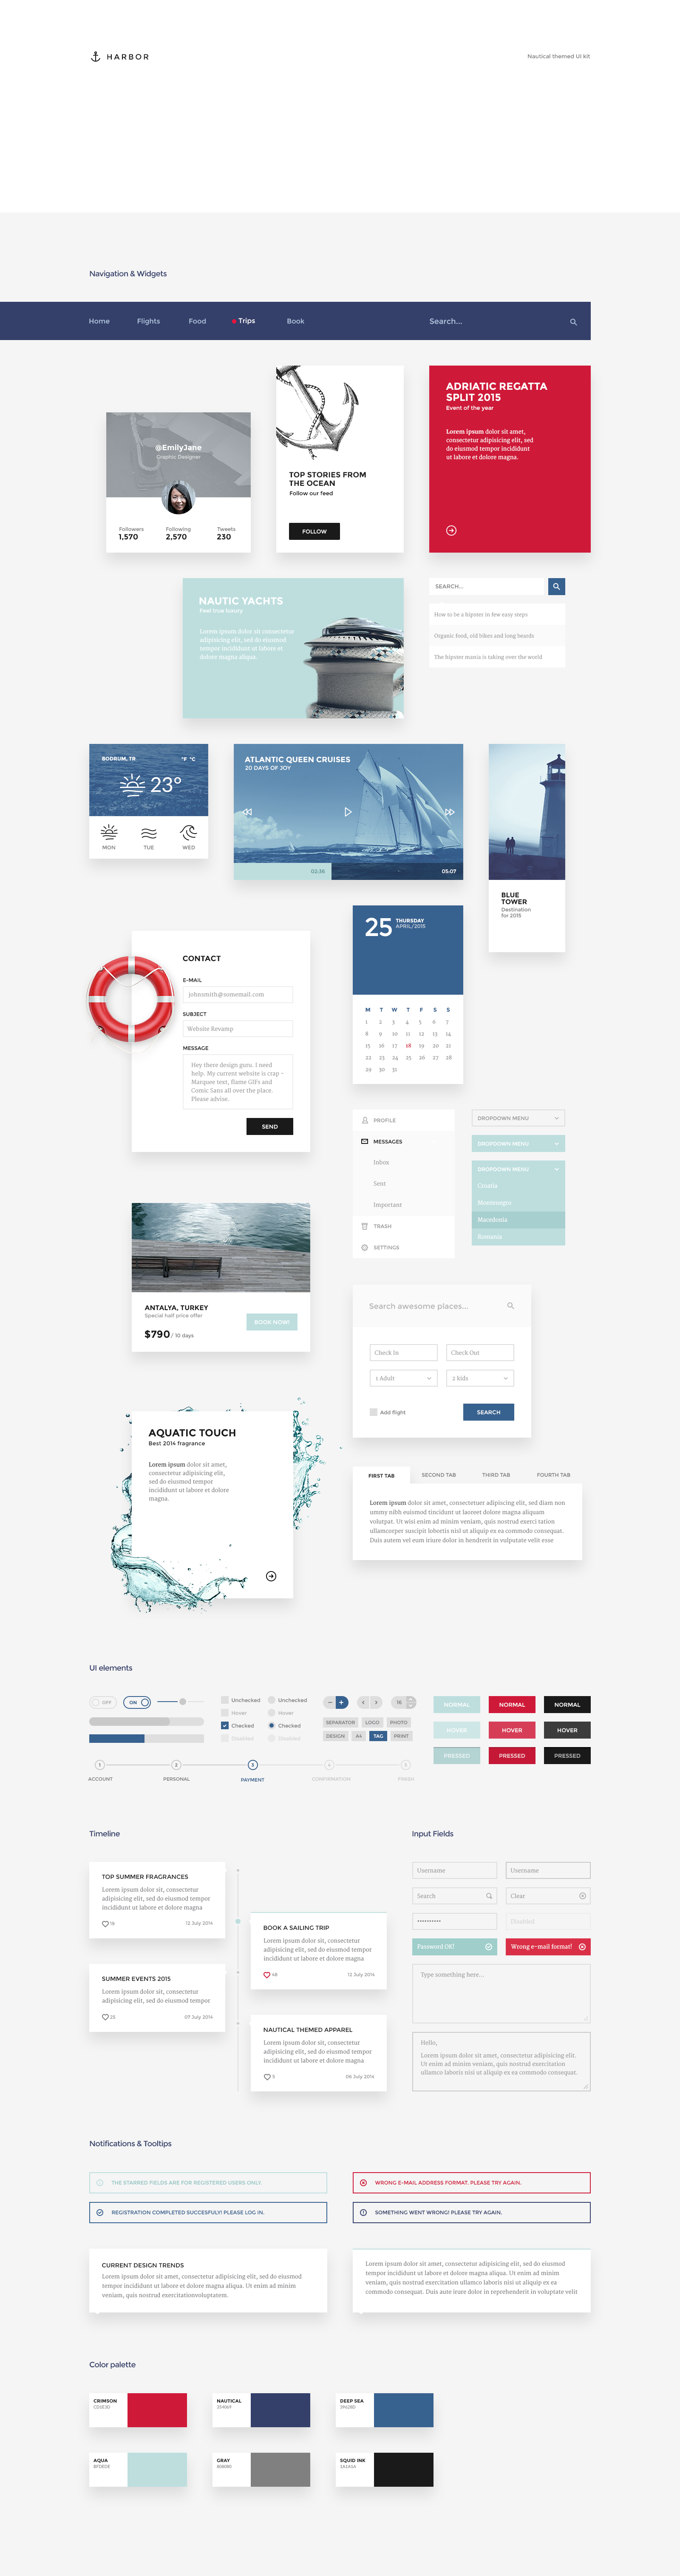 Web Design For Small Businesses Outdoor Services Ui Design Web Ui Design Web Design Inspiration